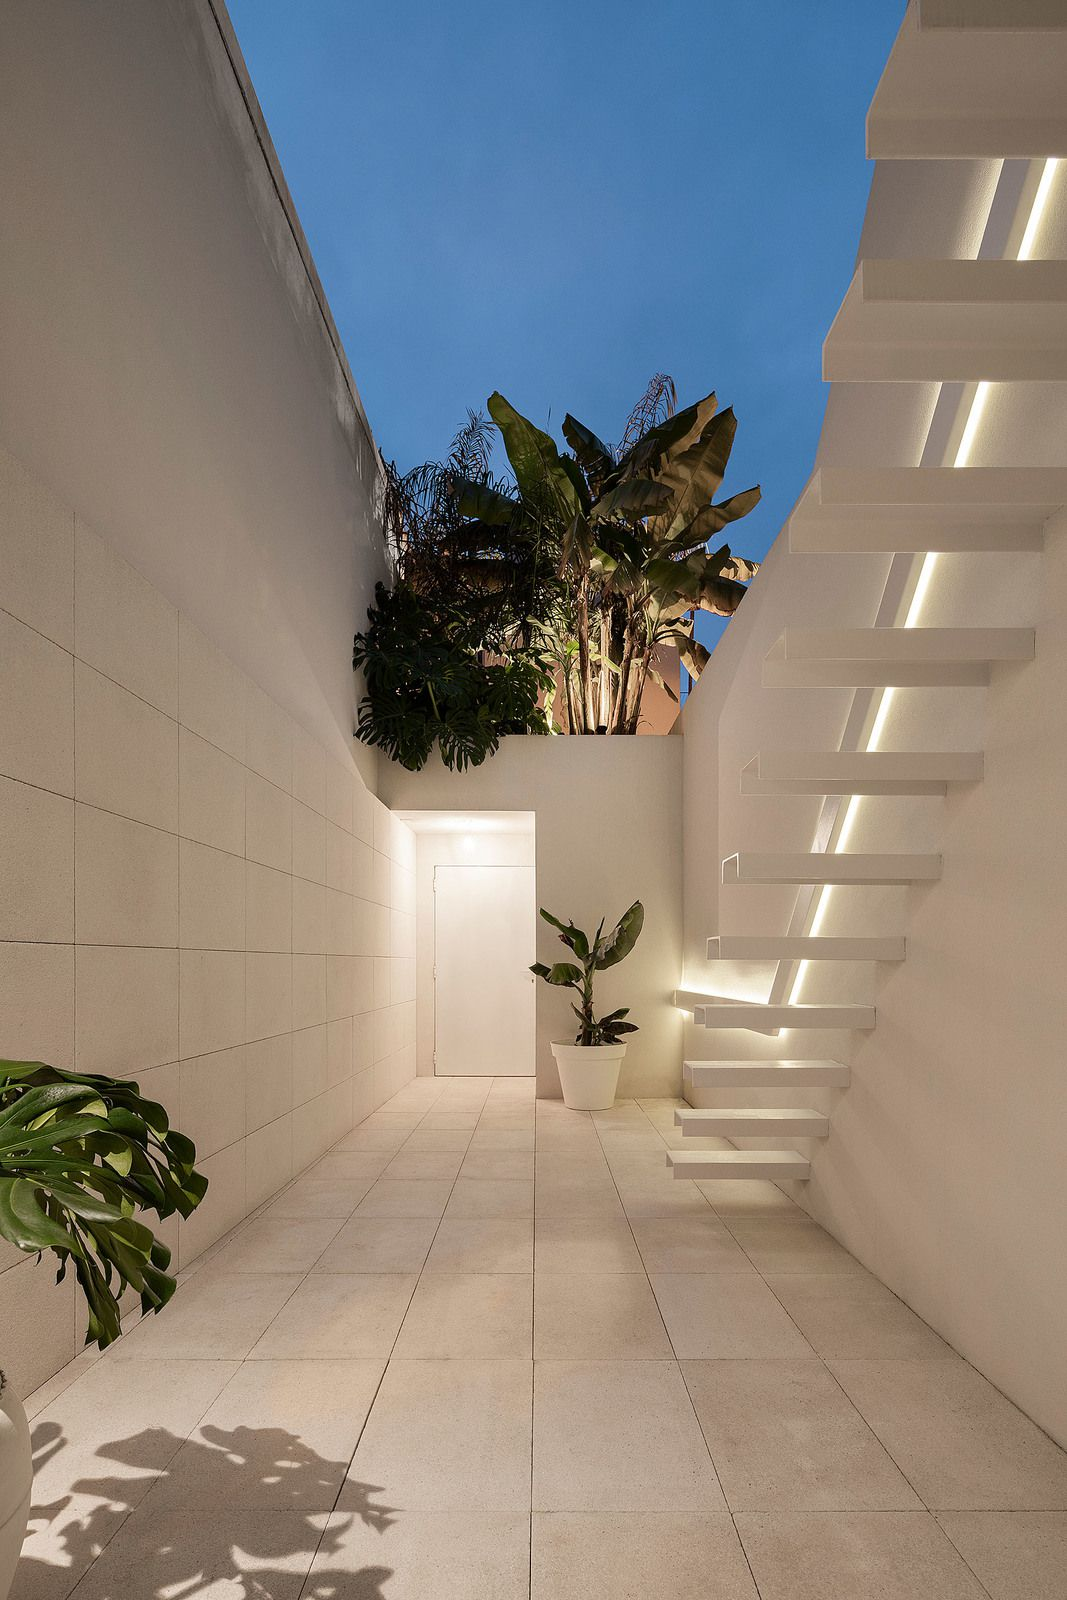 CASA BEIRA MAR, A SMALL HOUSE IN PORTUGAL, CONVERTED INTO AN INHABITED WORK OF ART BY THE ARCHITECT PAULO MARTINS.